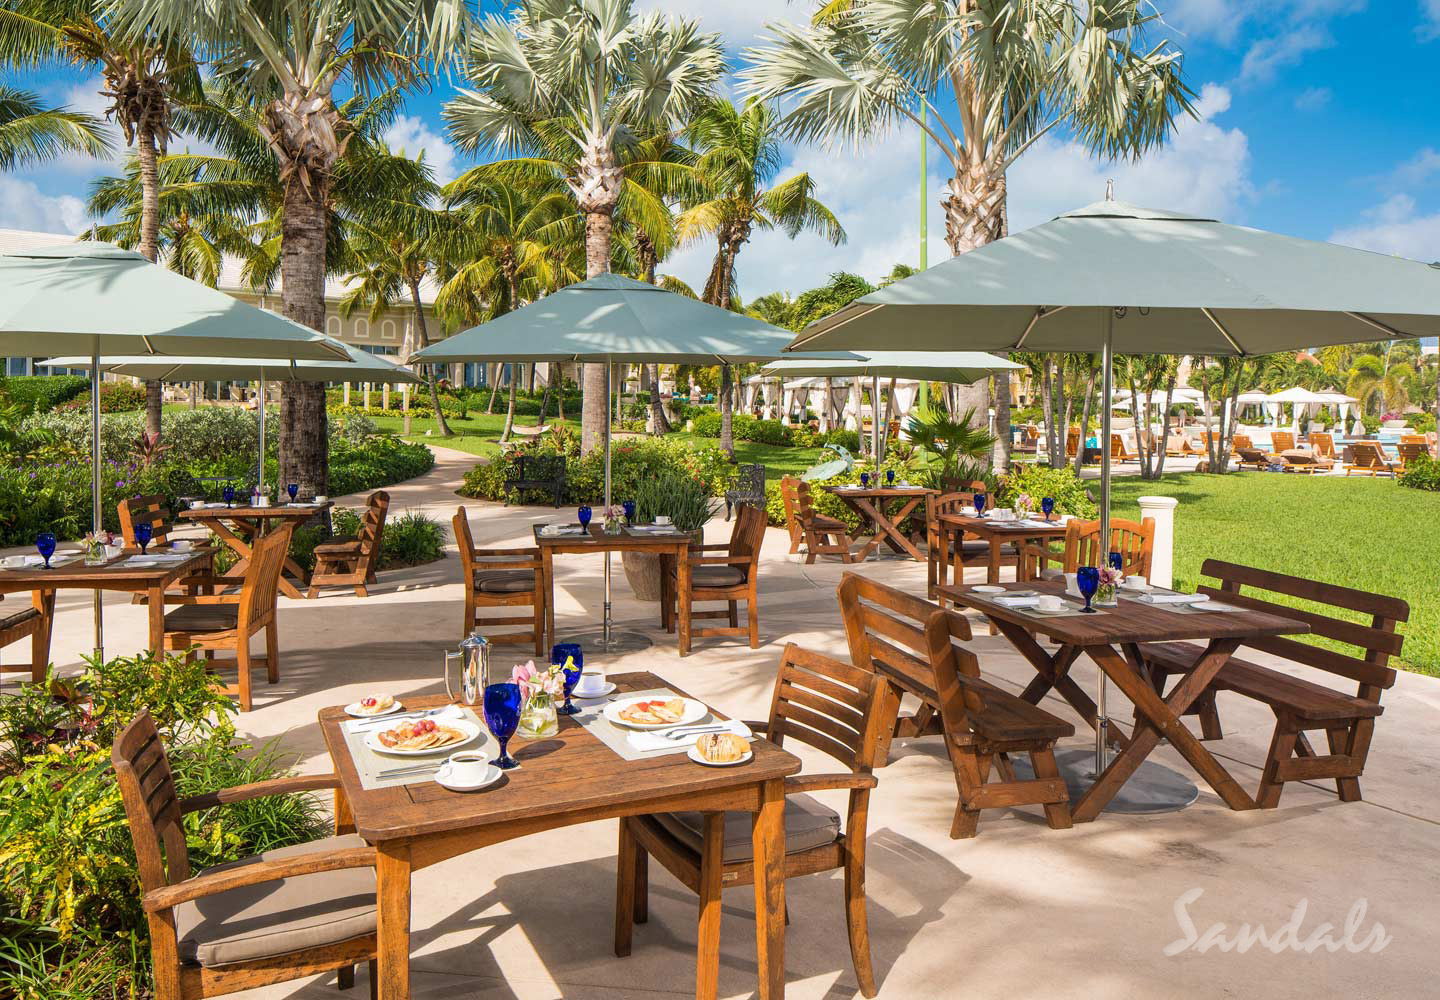 Travel Agency All-Inclusive Resort Sandals Emerald Bay 129